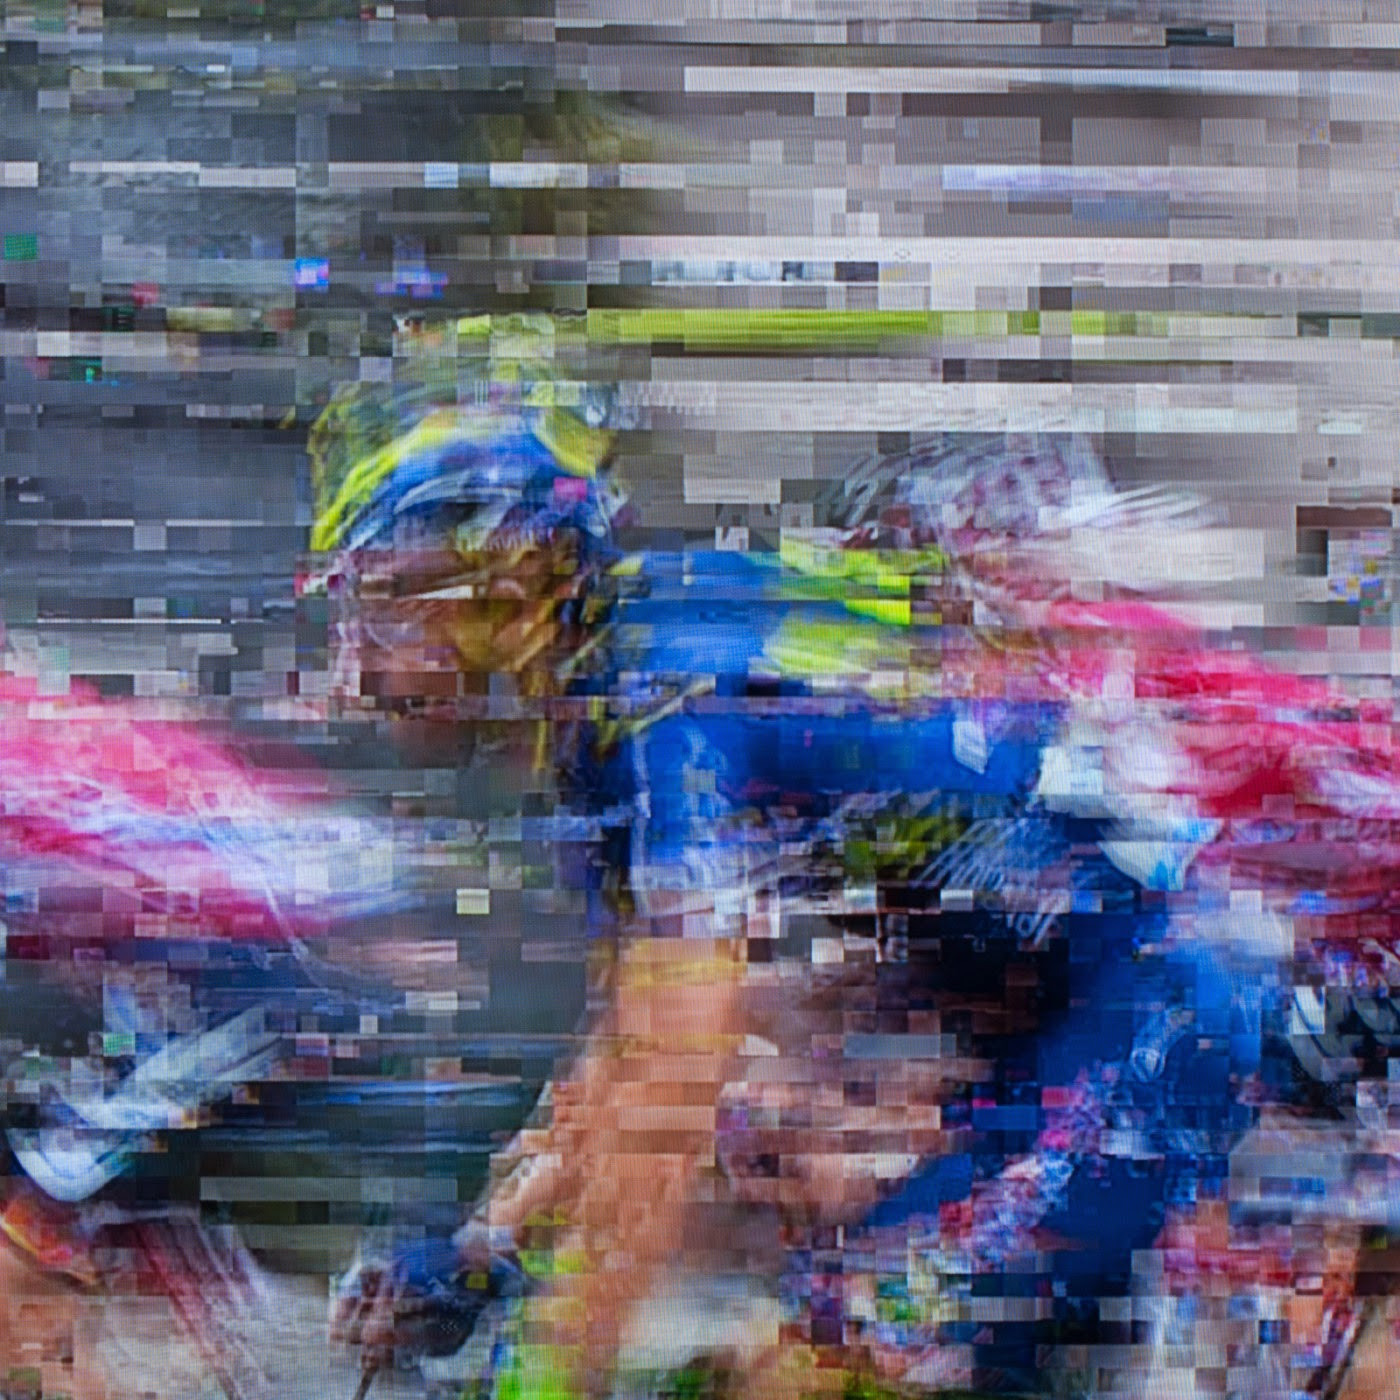 glitch, tim macauley, you won't see this at MoMA, le tour de france, 2014, abstract, abstraction, tv coverage, signal loss, noise to signal ratio, photographic art, graphic, digital, noise, signal, movistar